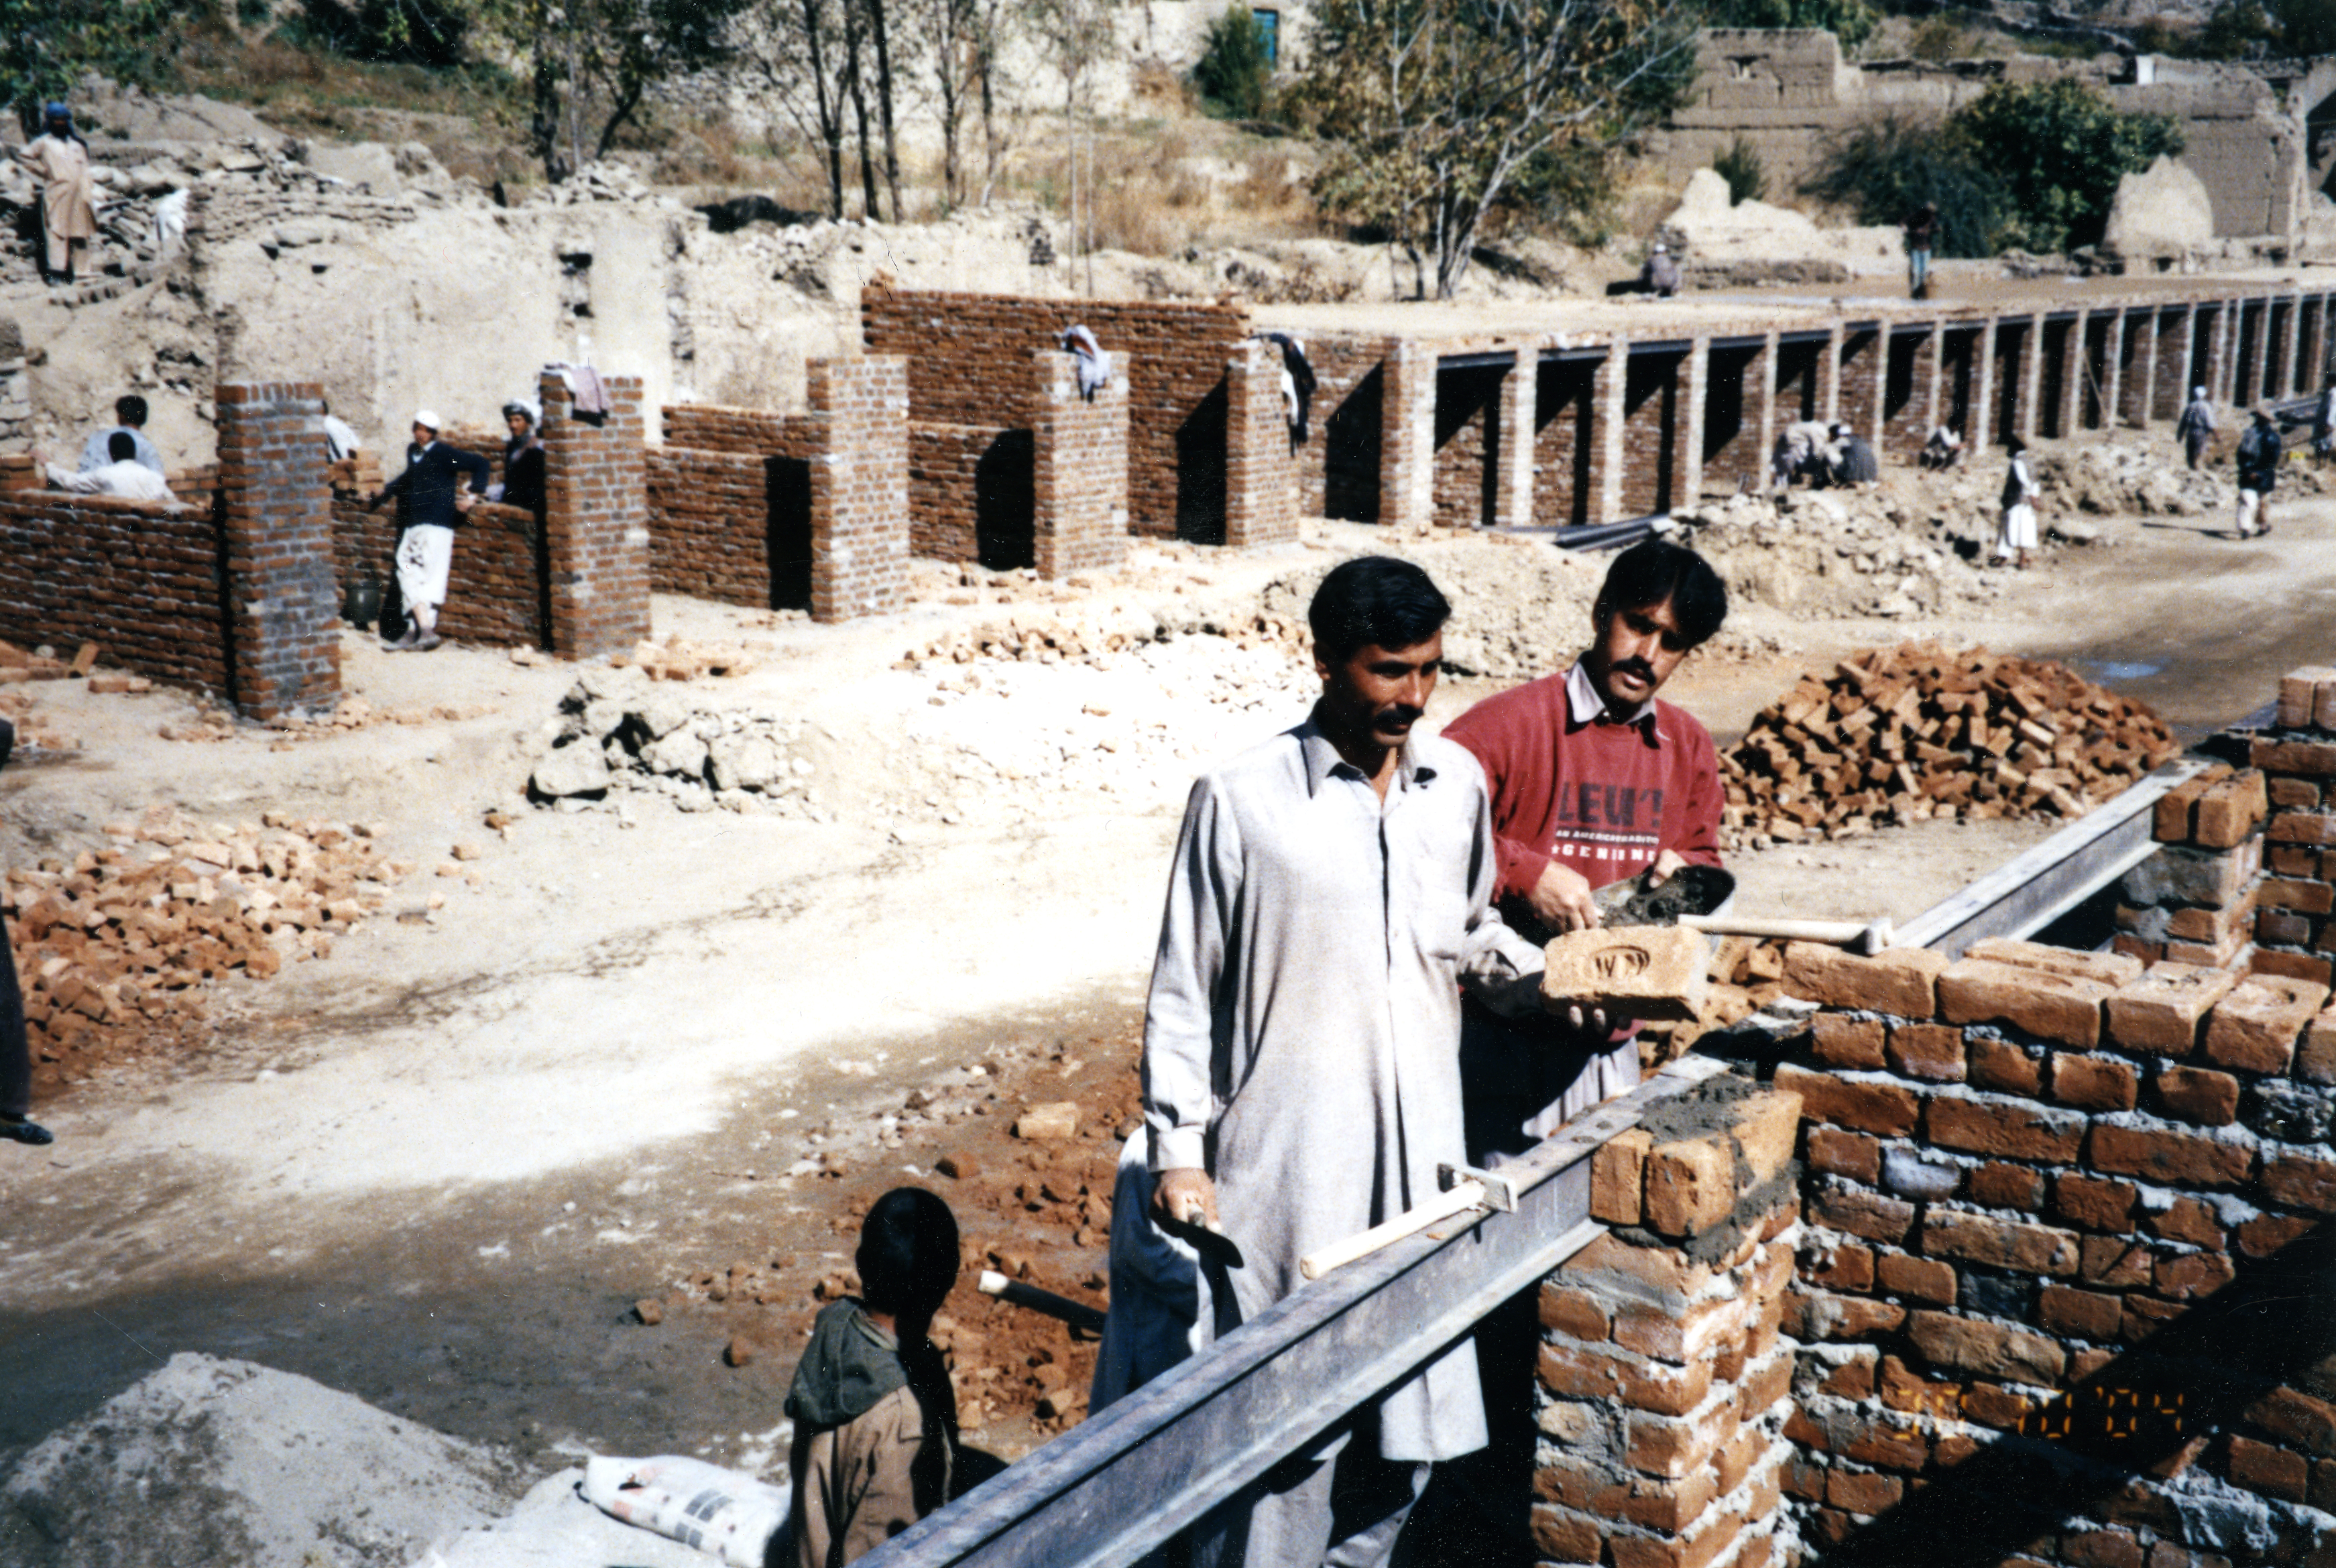 Constructing new walls in Istalif Afghanistan